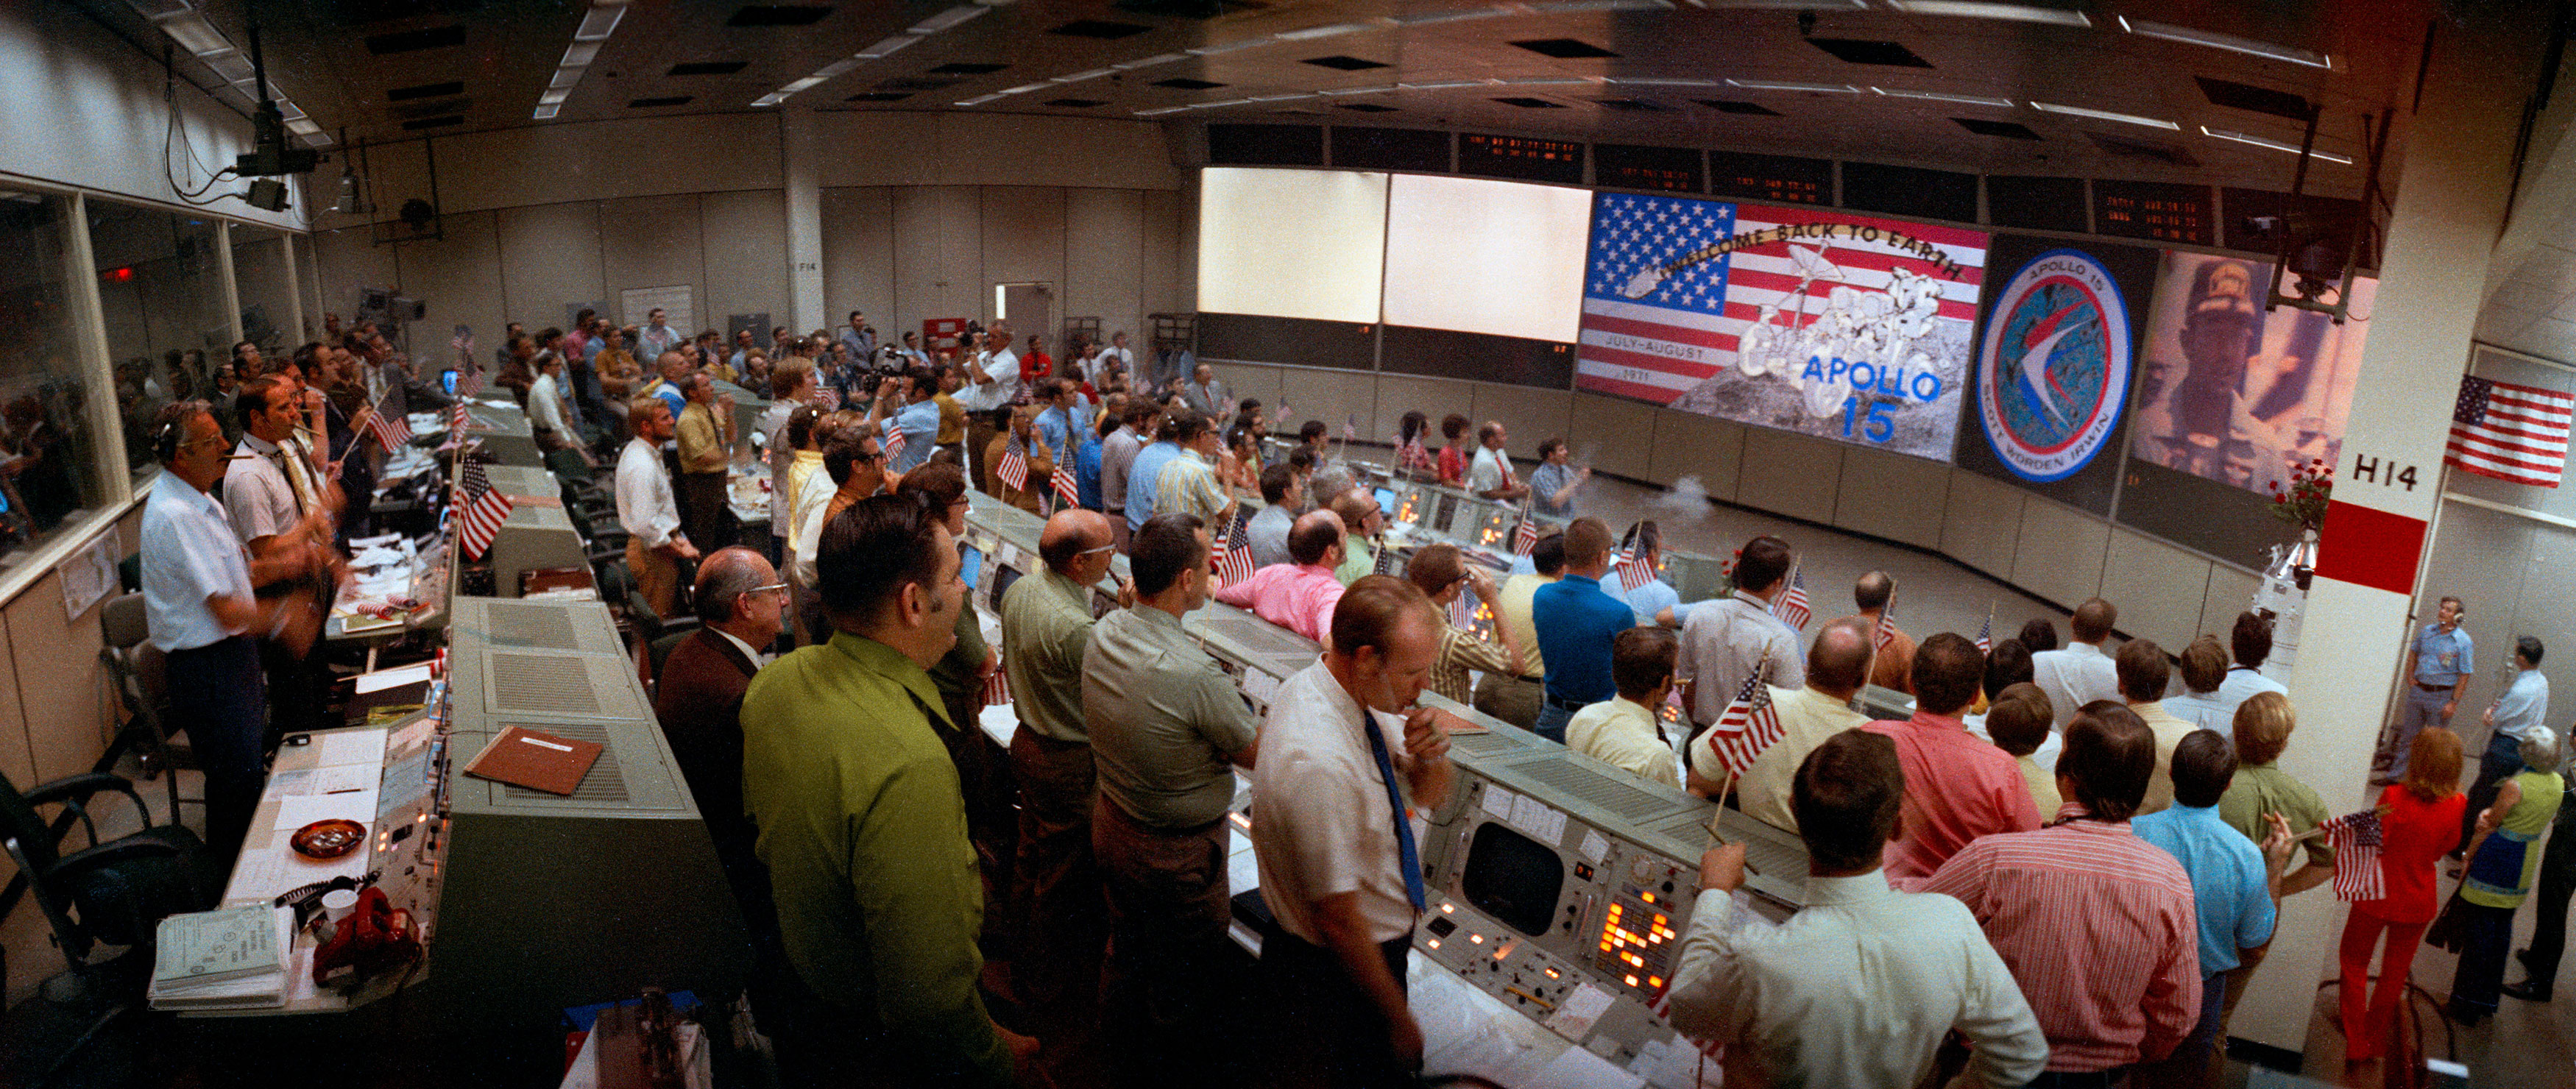 A wide-angle, overall view of the Mission Operations Control Room in the Johnson Space Center Mission Control Center taken after recovery of the Apollo 15 crew aboard the USS Okinawa. Credit: NASA via Retro Space Images